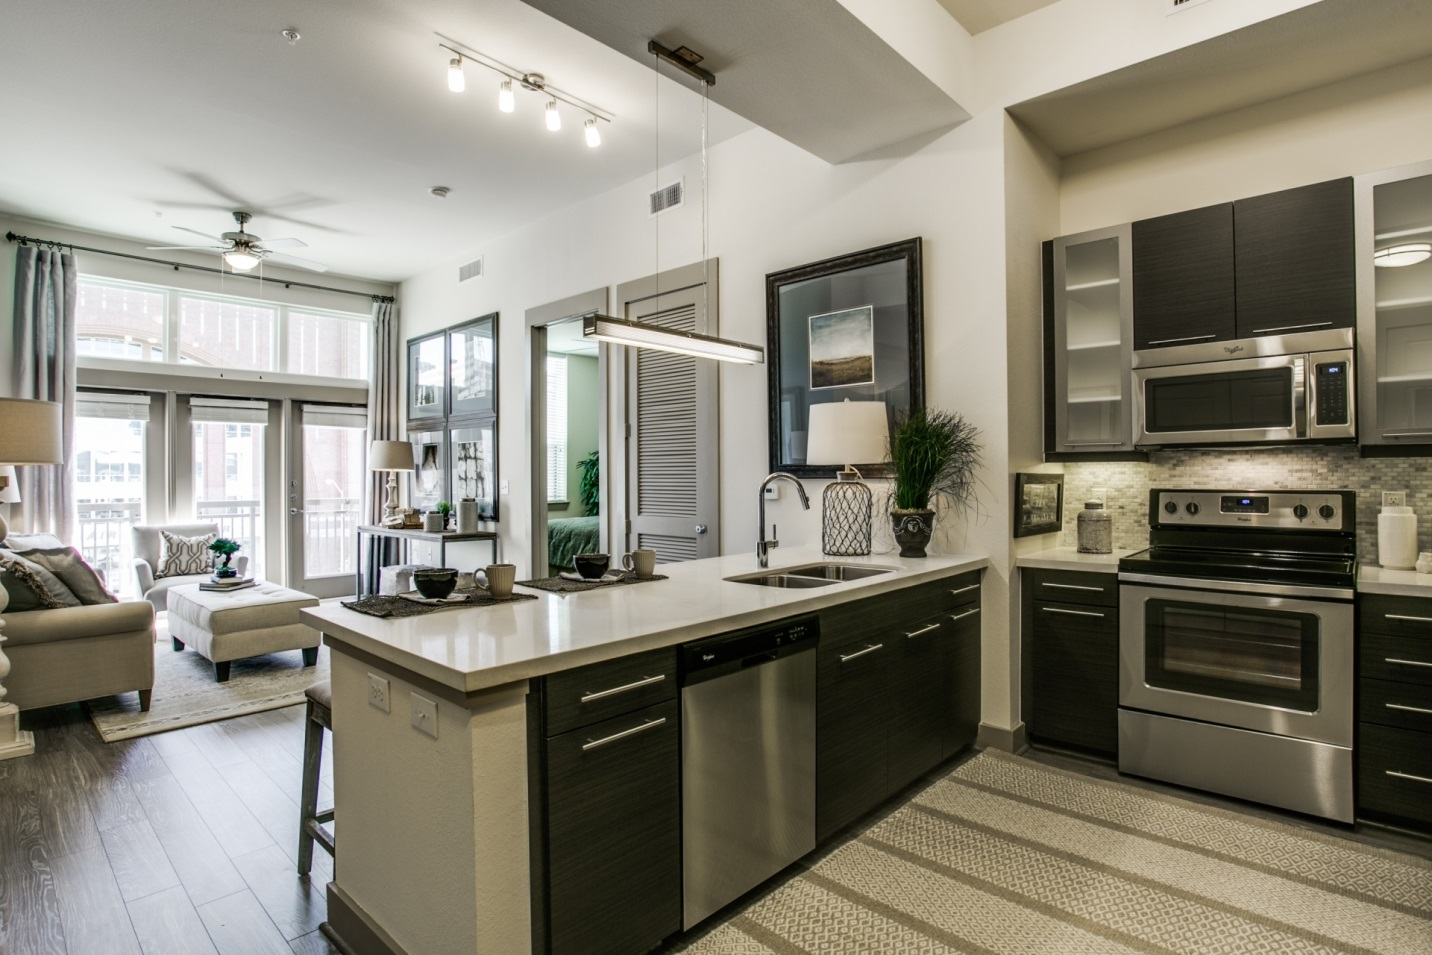 Camden Design District Apartments spending money where it matters designer home on a budget |